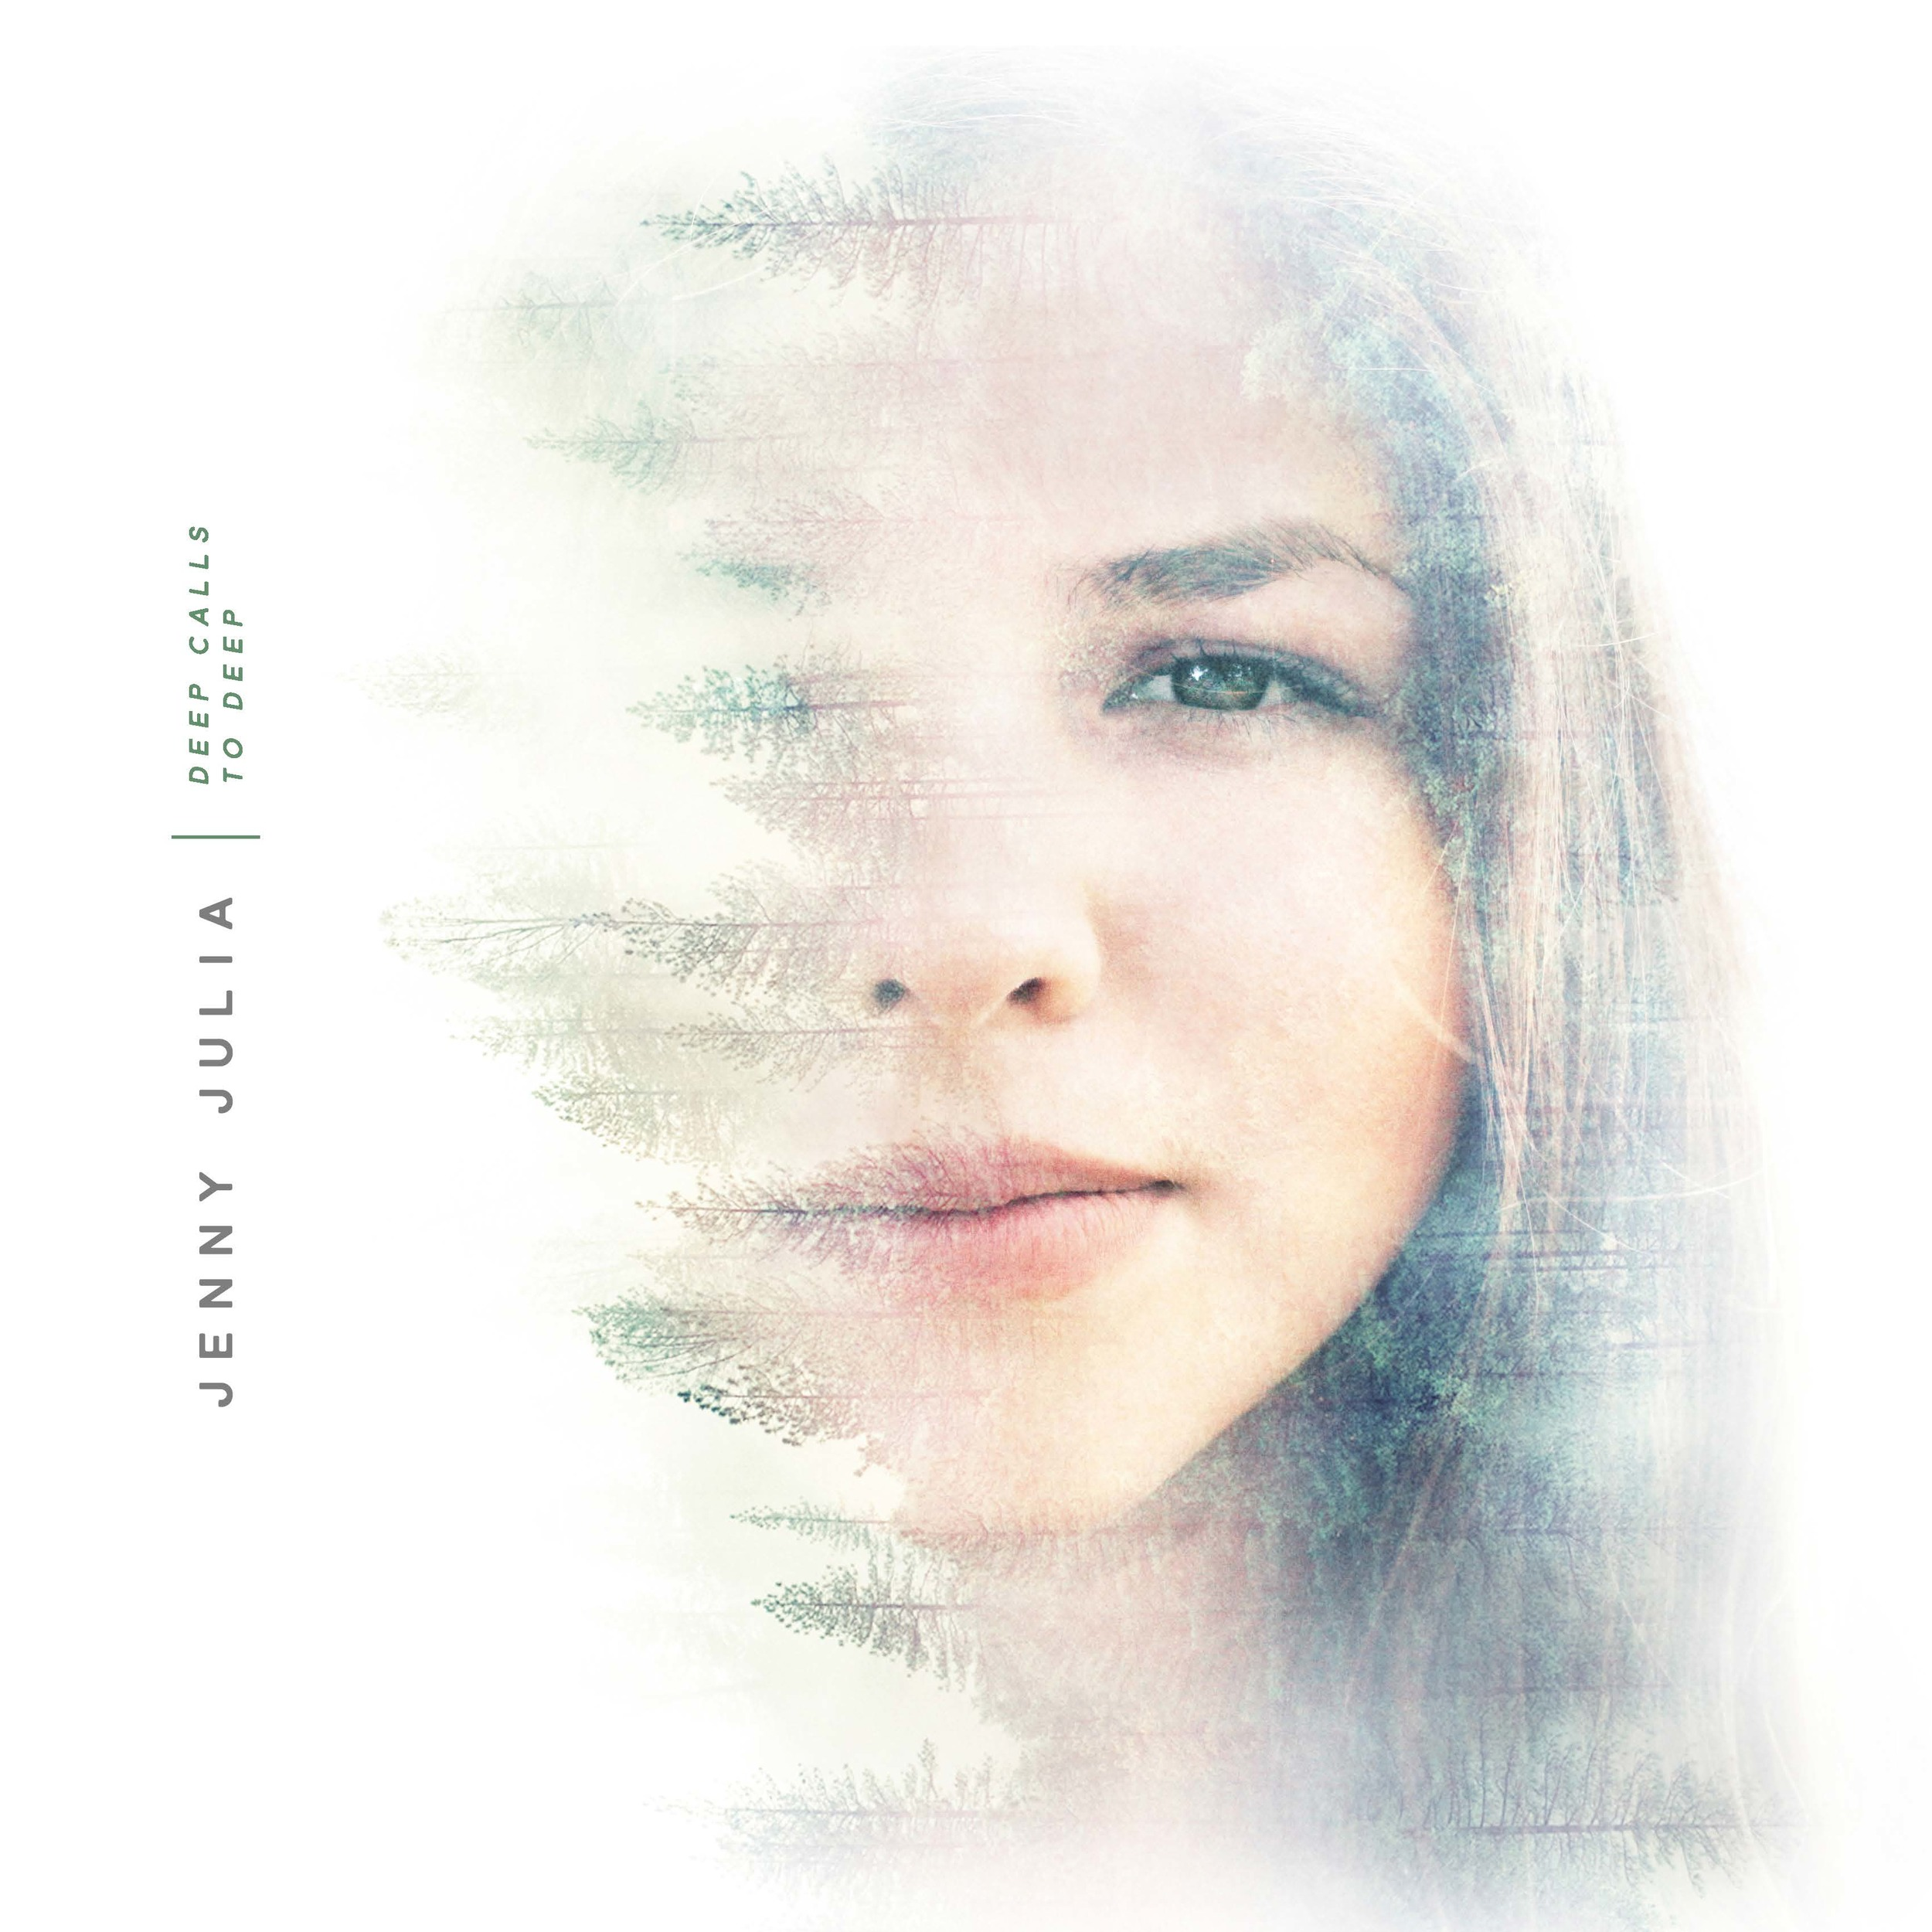 Download now the Jenny Julia first EP release.